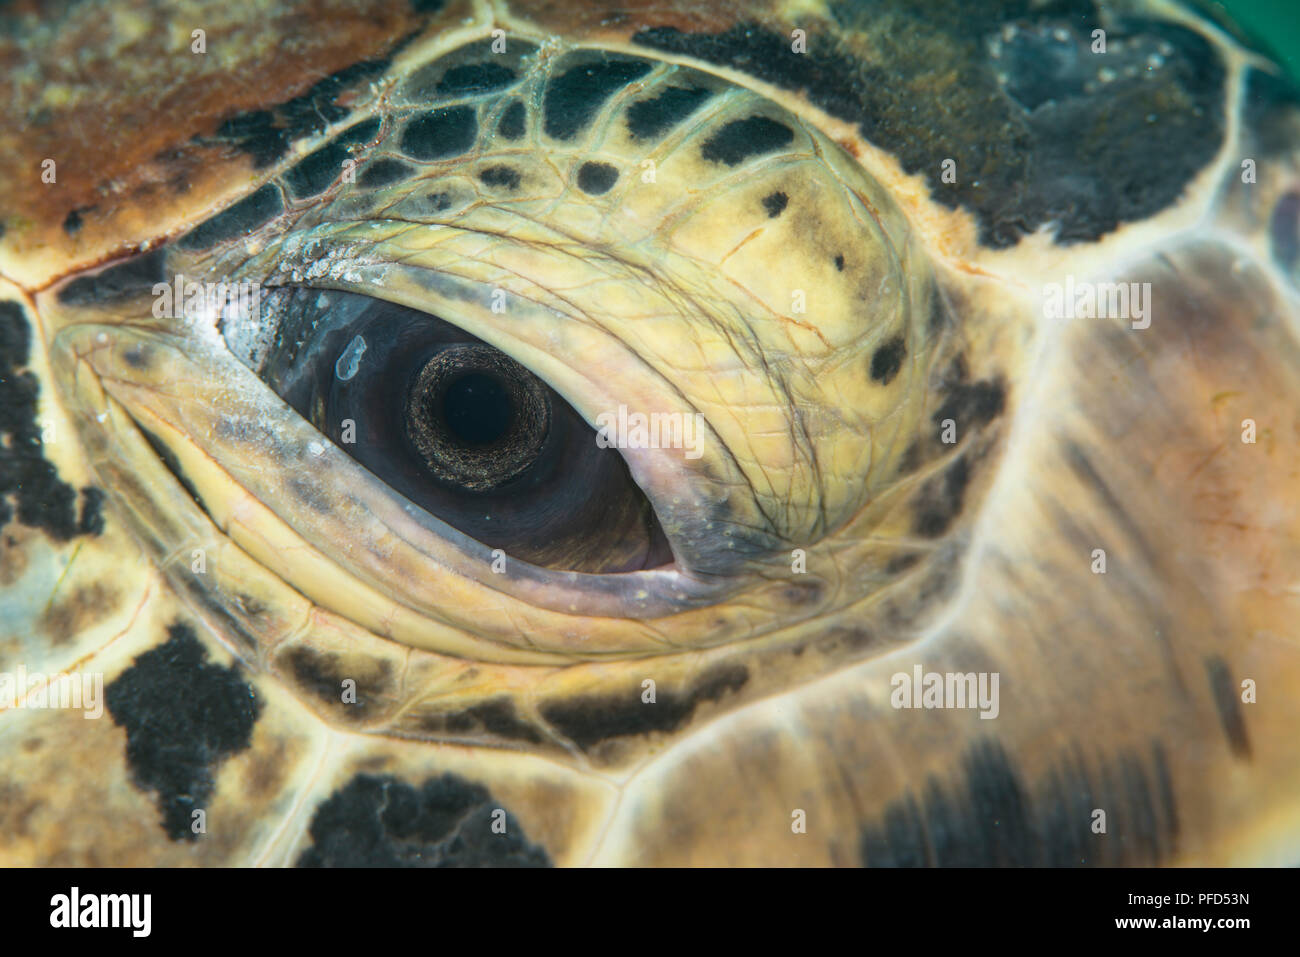 Underwater macro abstract photo of the eye of a green sea turtle at Mabul Island, Sabah, Malaysia - Stock Image